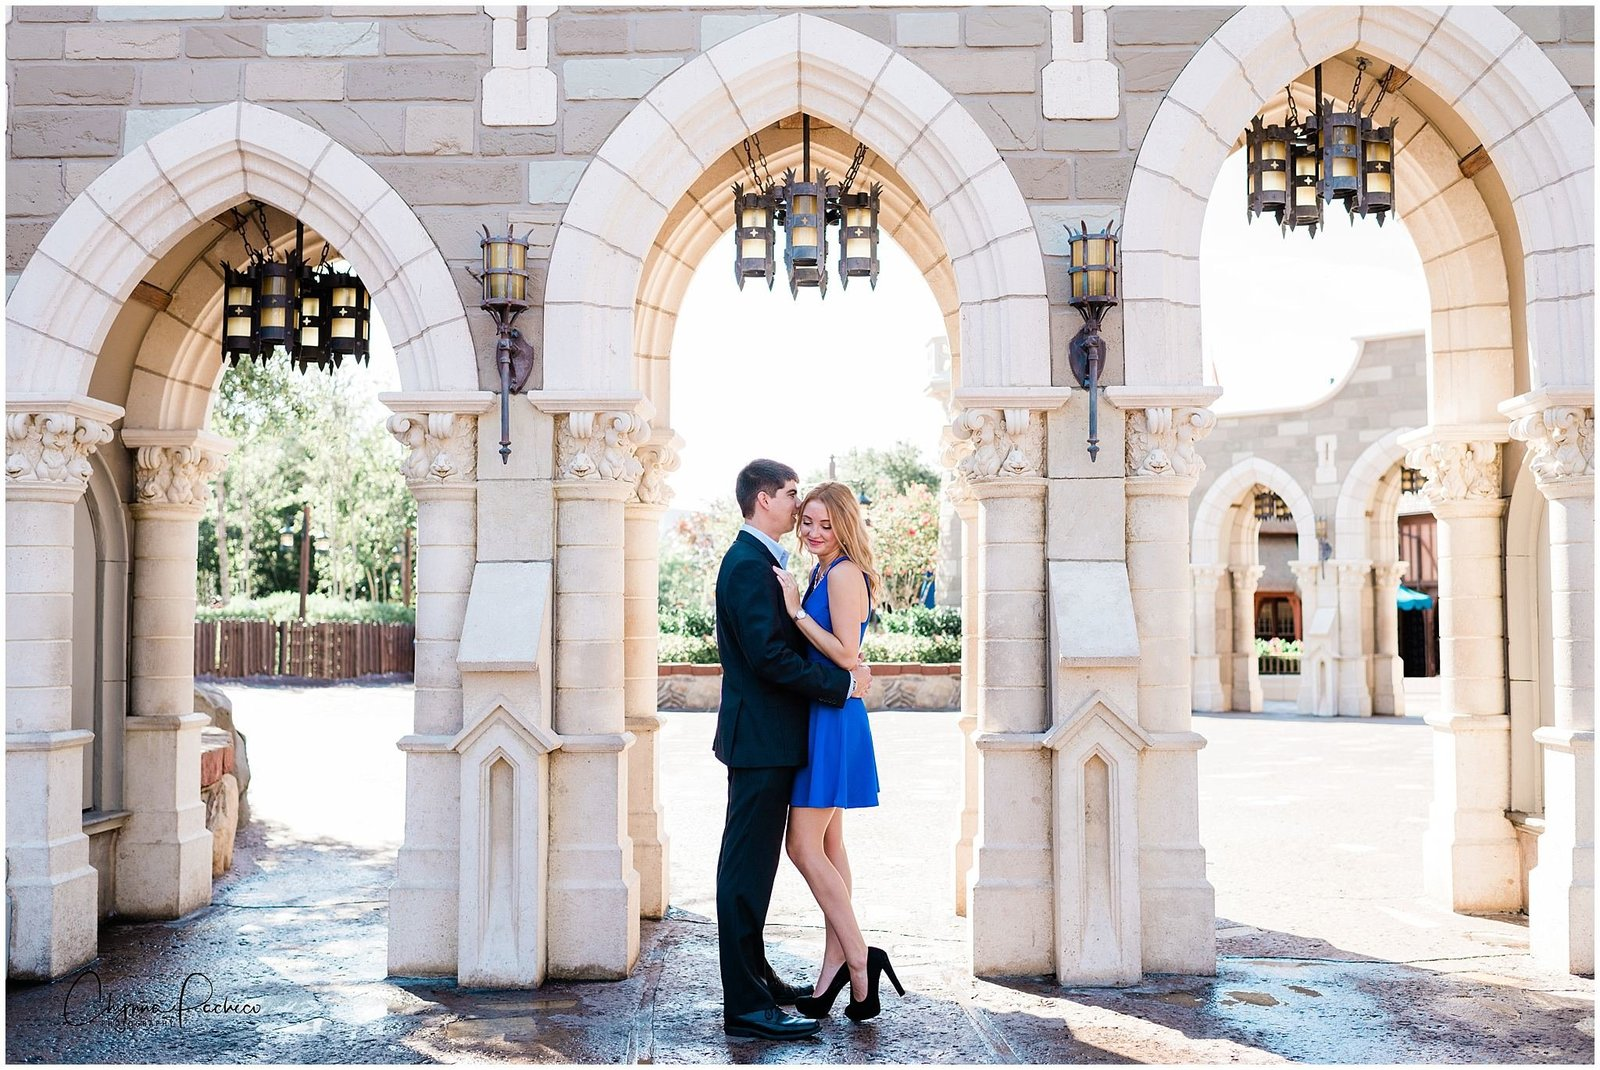 DisneyEngagement34